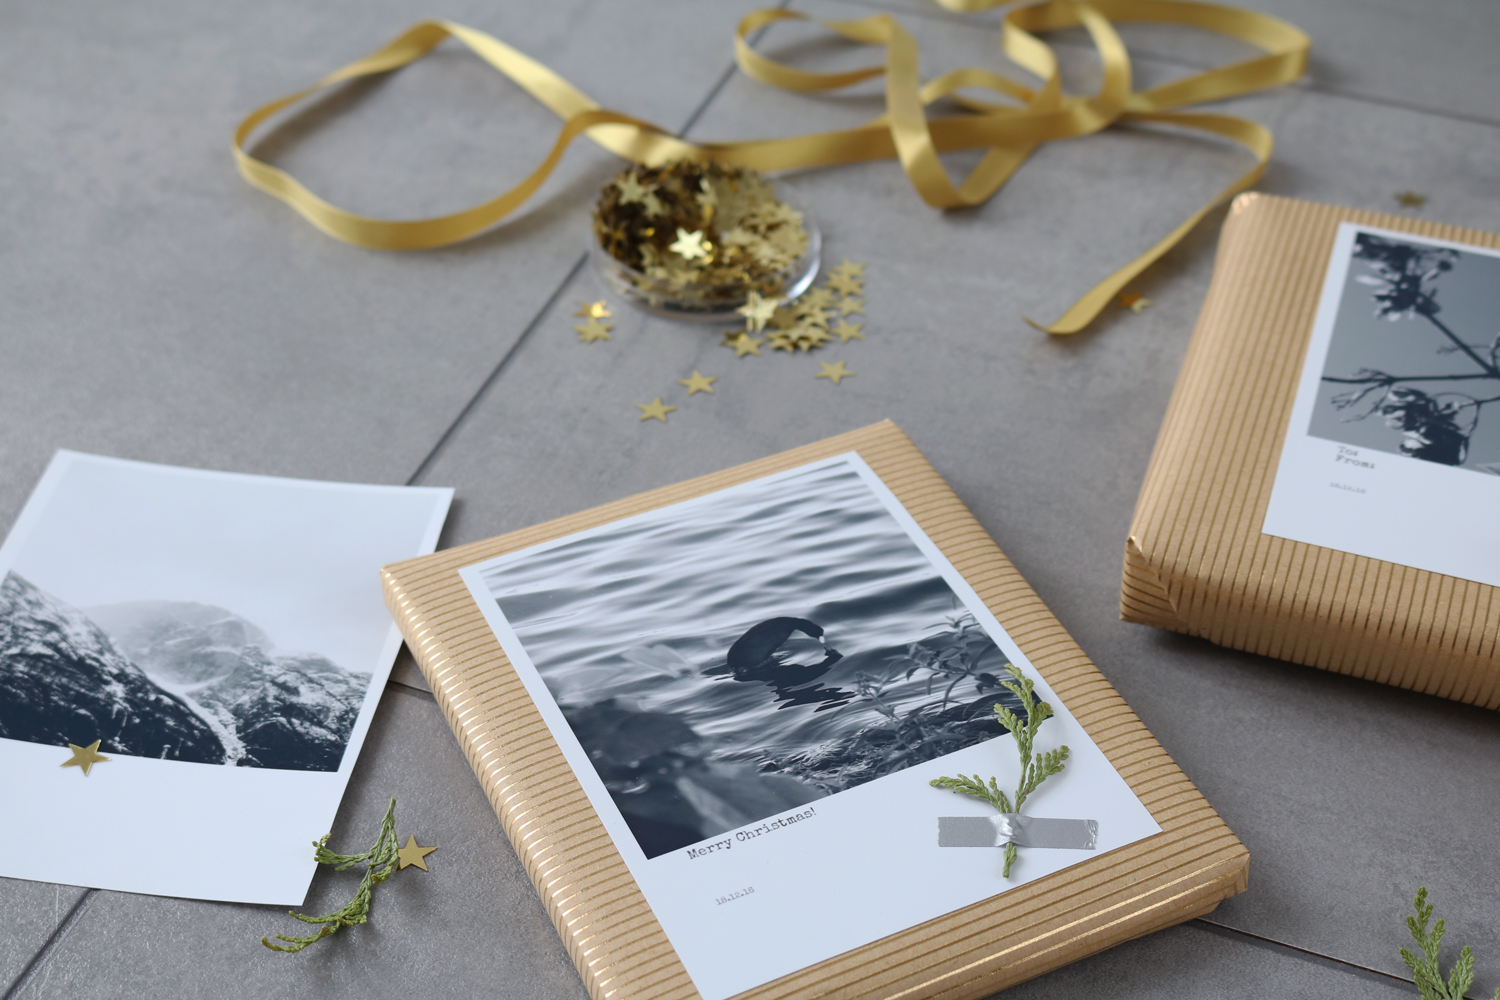 diy geschenke mit polaroids verpacken pretty nice. Black Bedroom Furniture Sets. Home Design Ideas